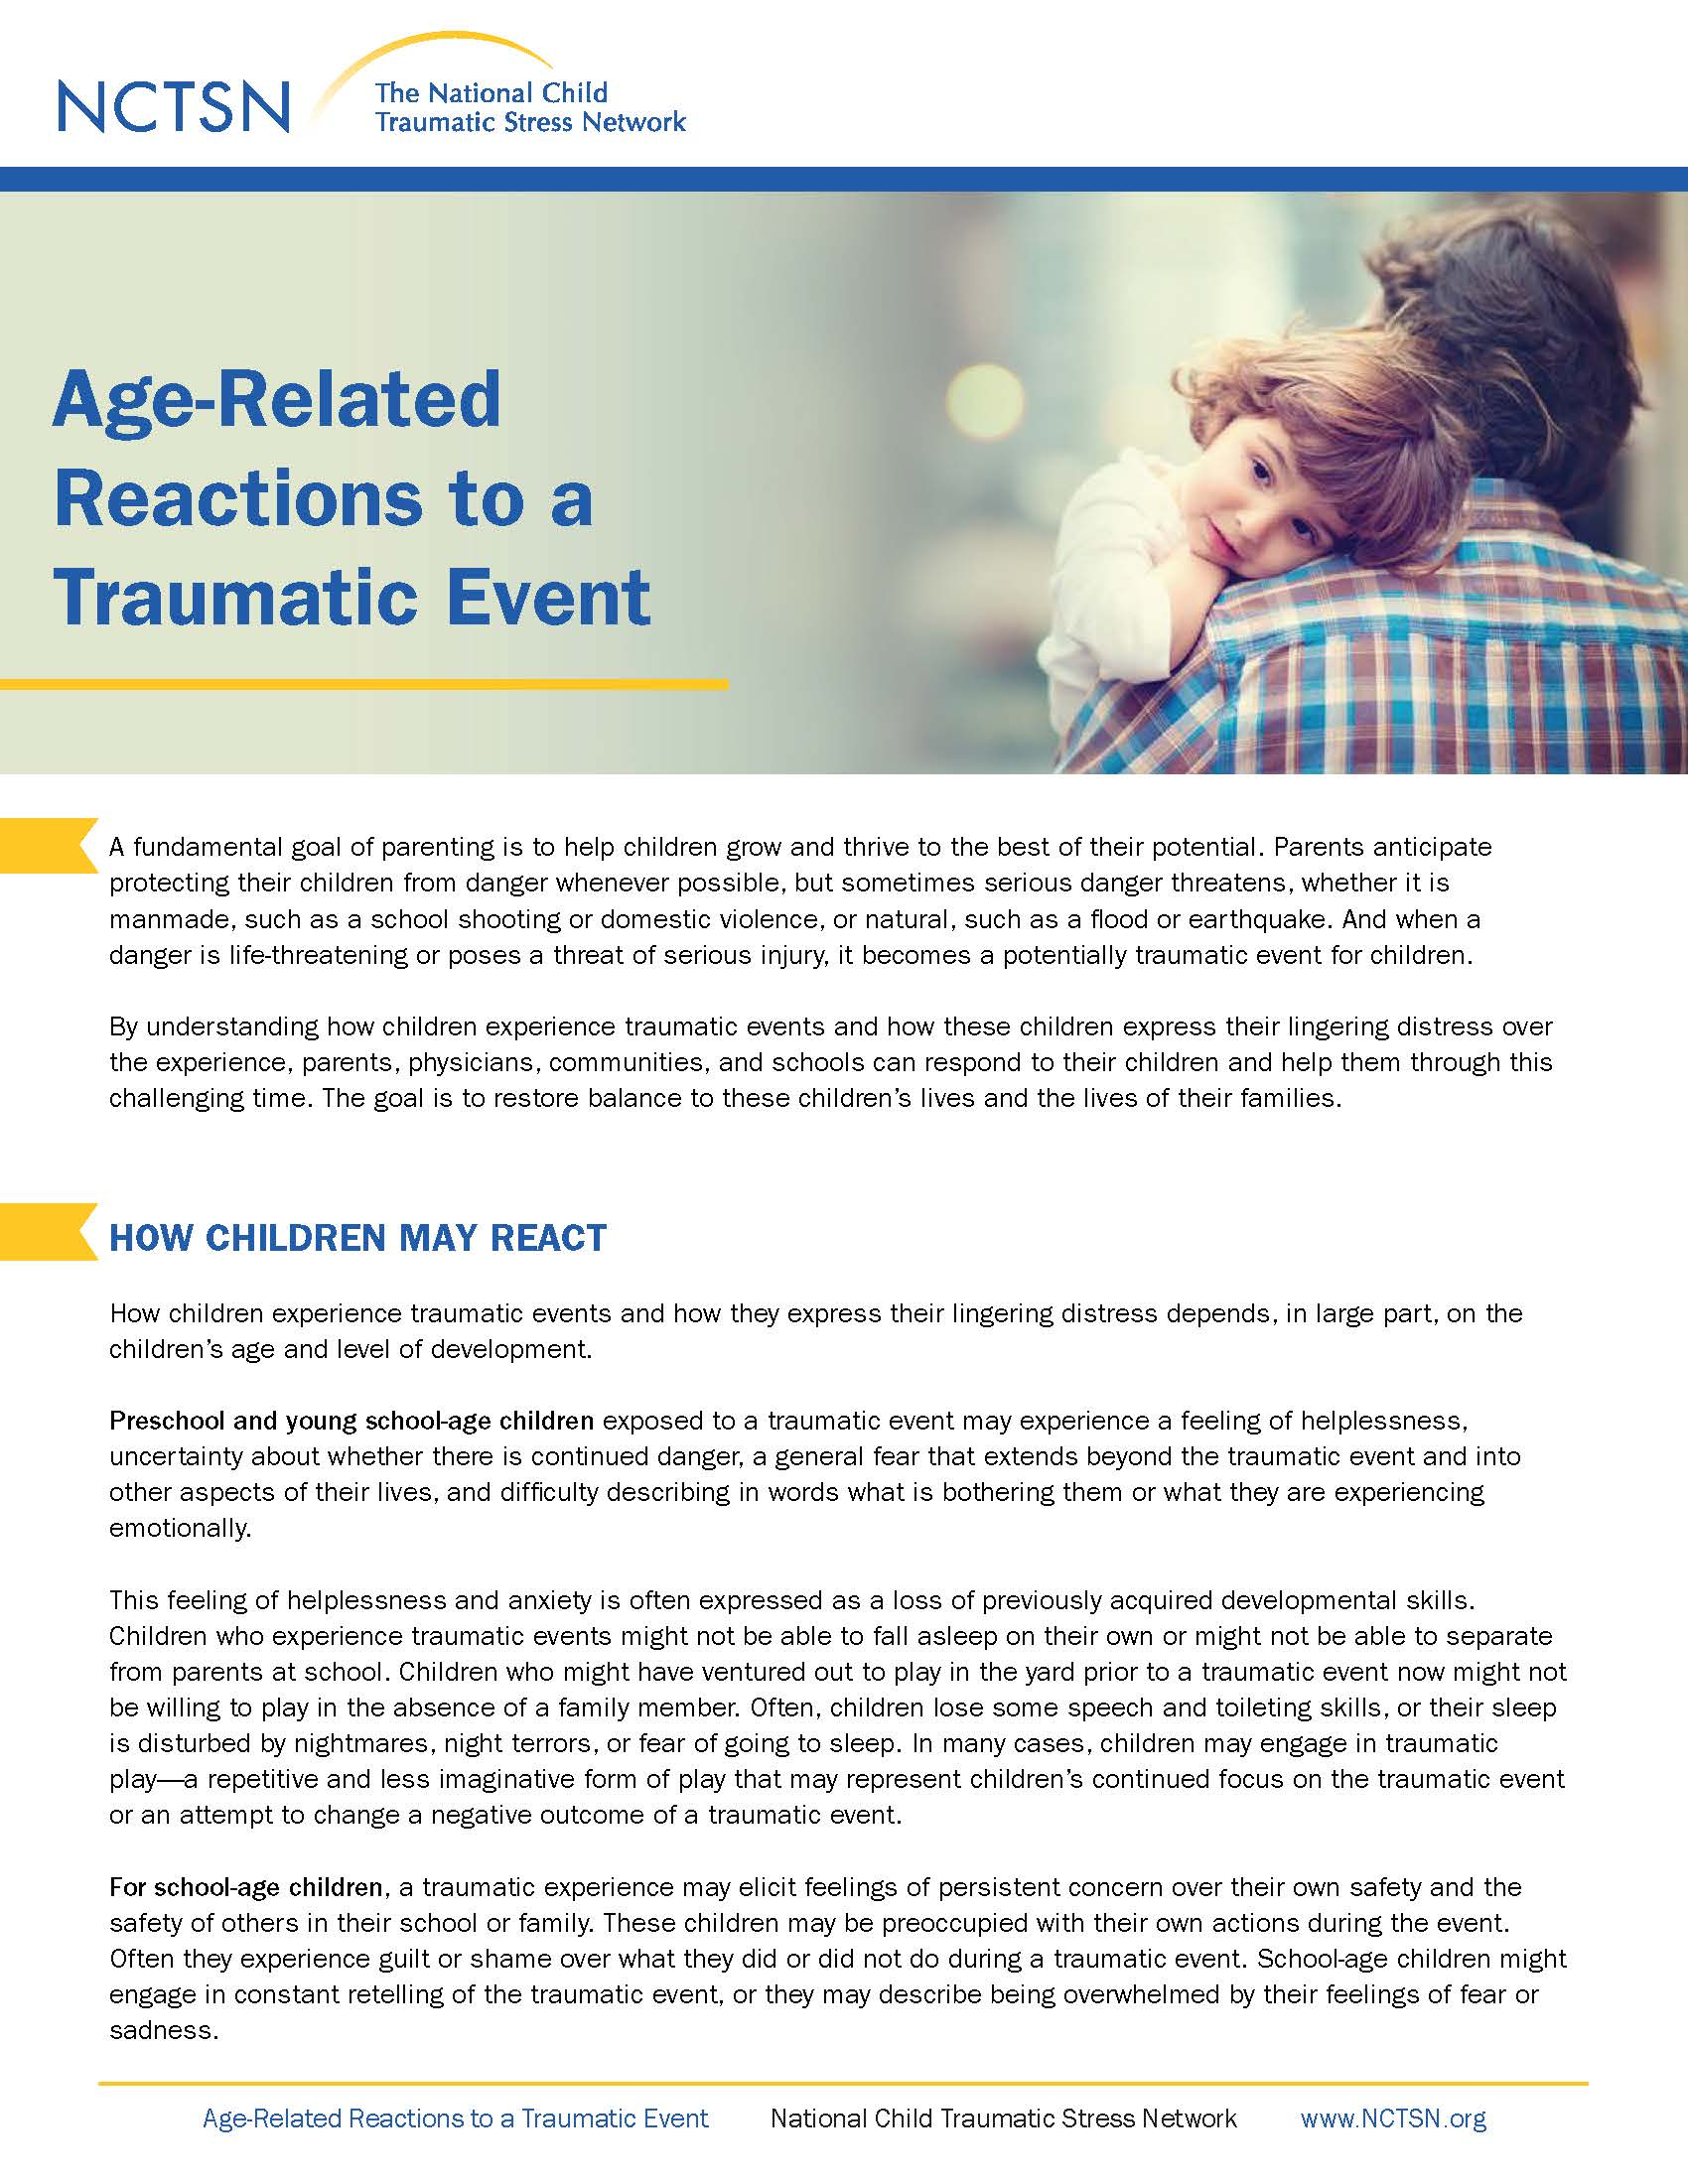 age_related_reactions_to_traumatic_events.original.1600112067_Page_1